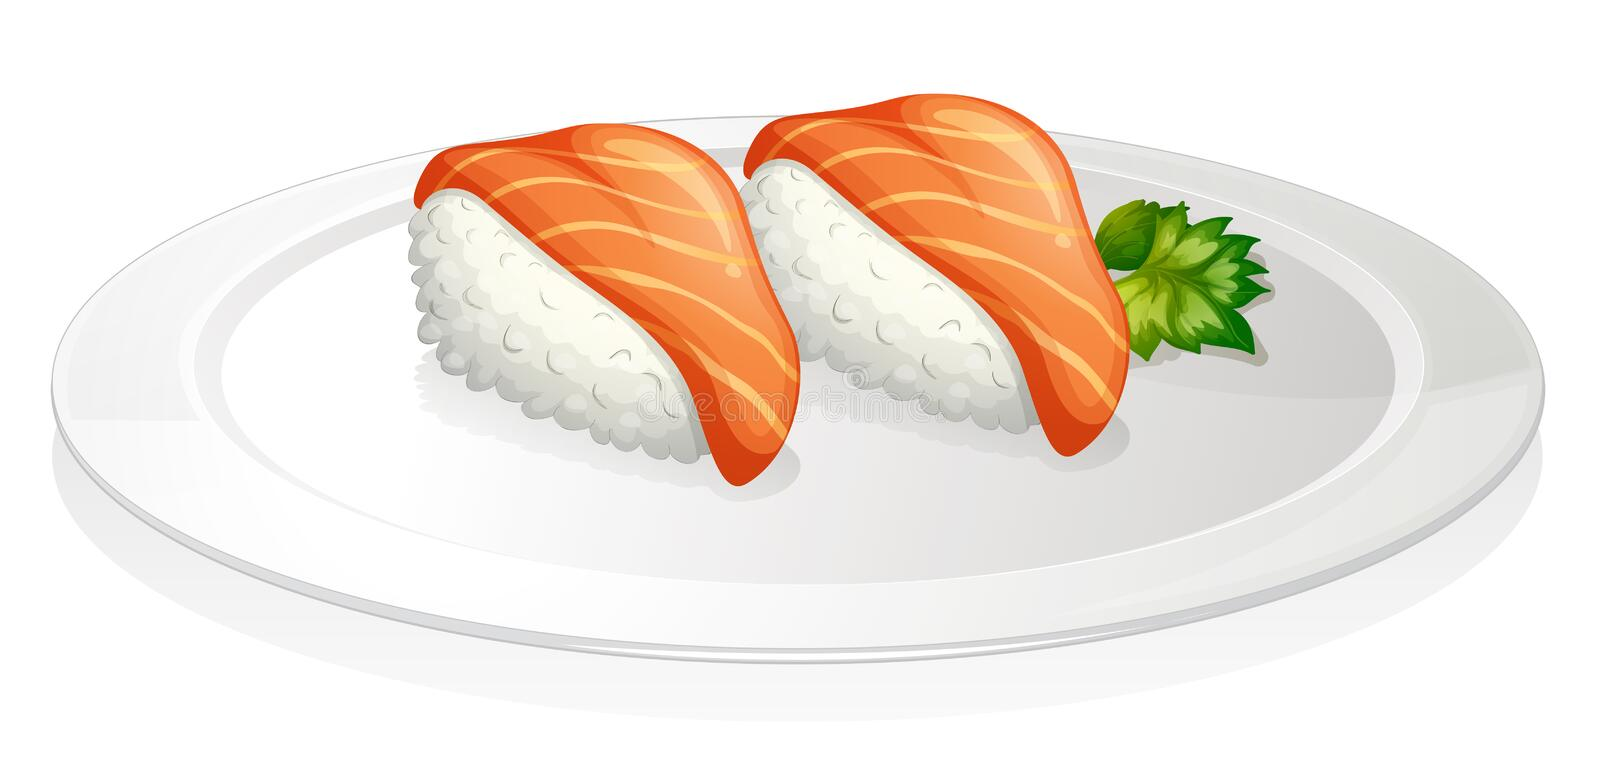 Download A Plate With Two Sets Of Sushi Stock Vector - Illustration: 33098086